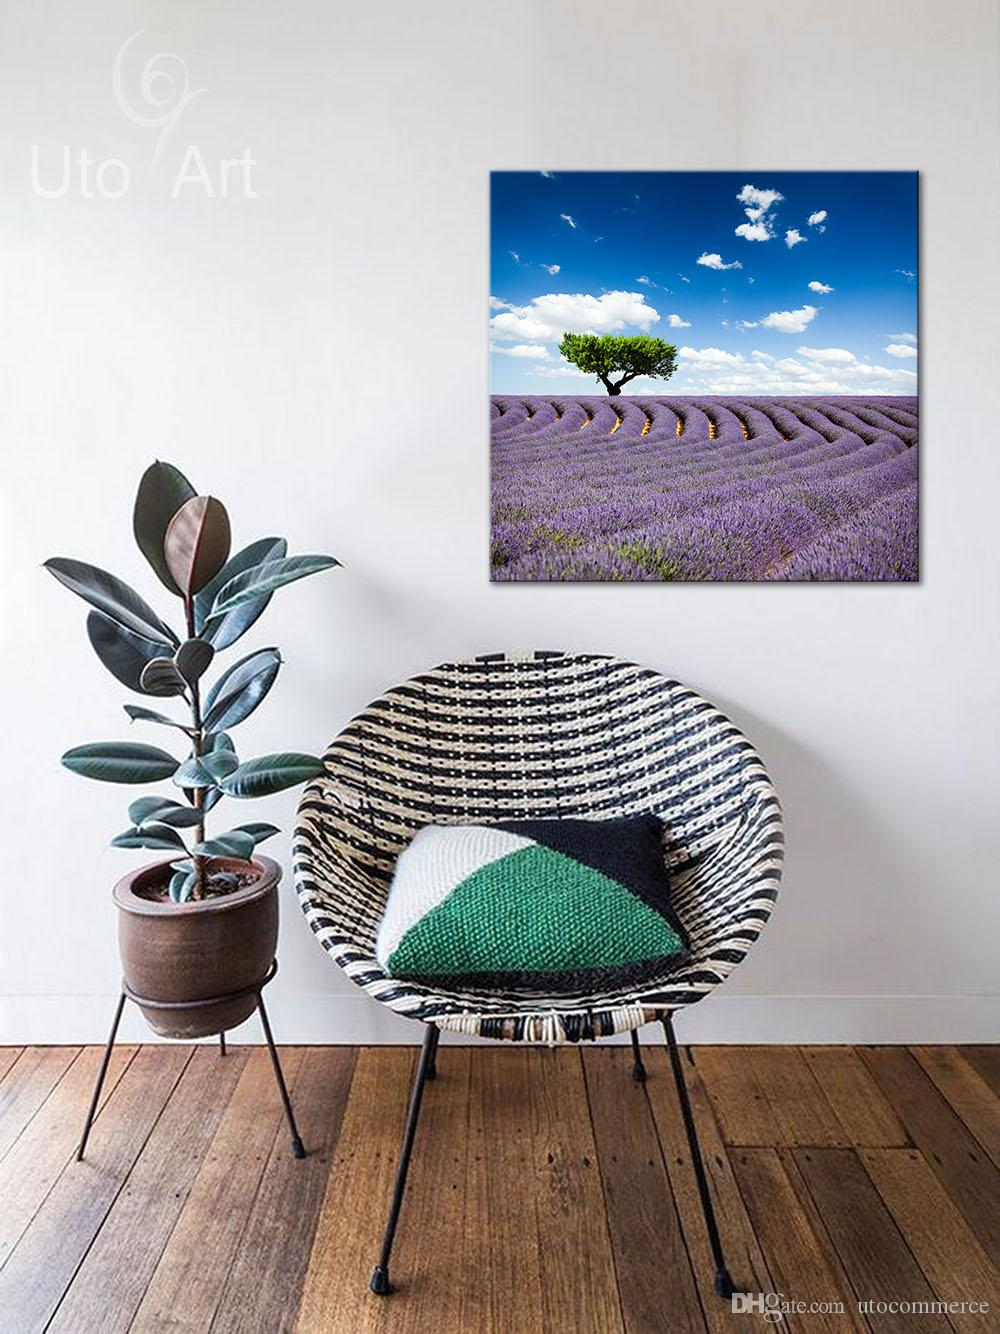 Morden Picture Purple Flowers Art Wall Painting Landscape Canvas Painting Spray Print for Home Decoration Canvas Print Square